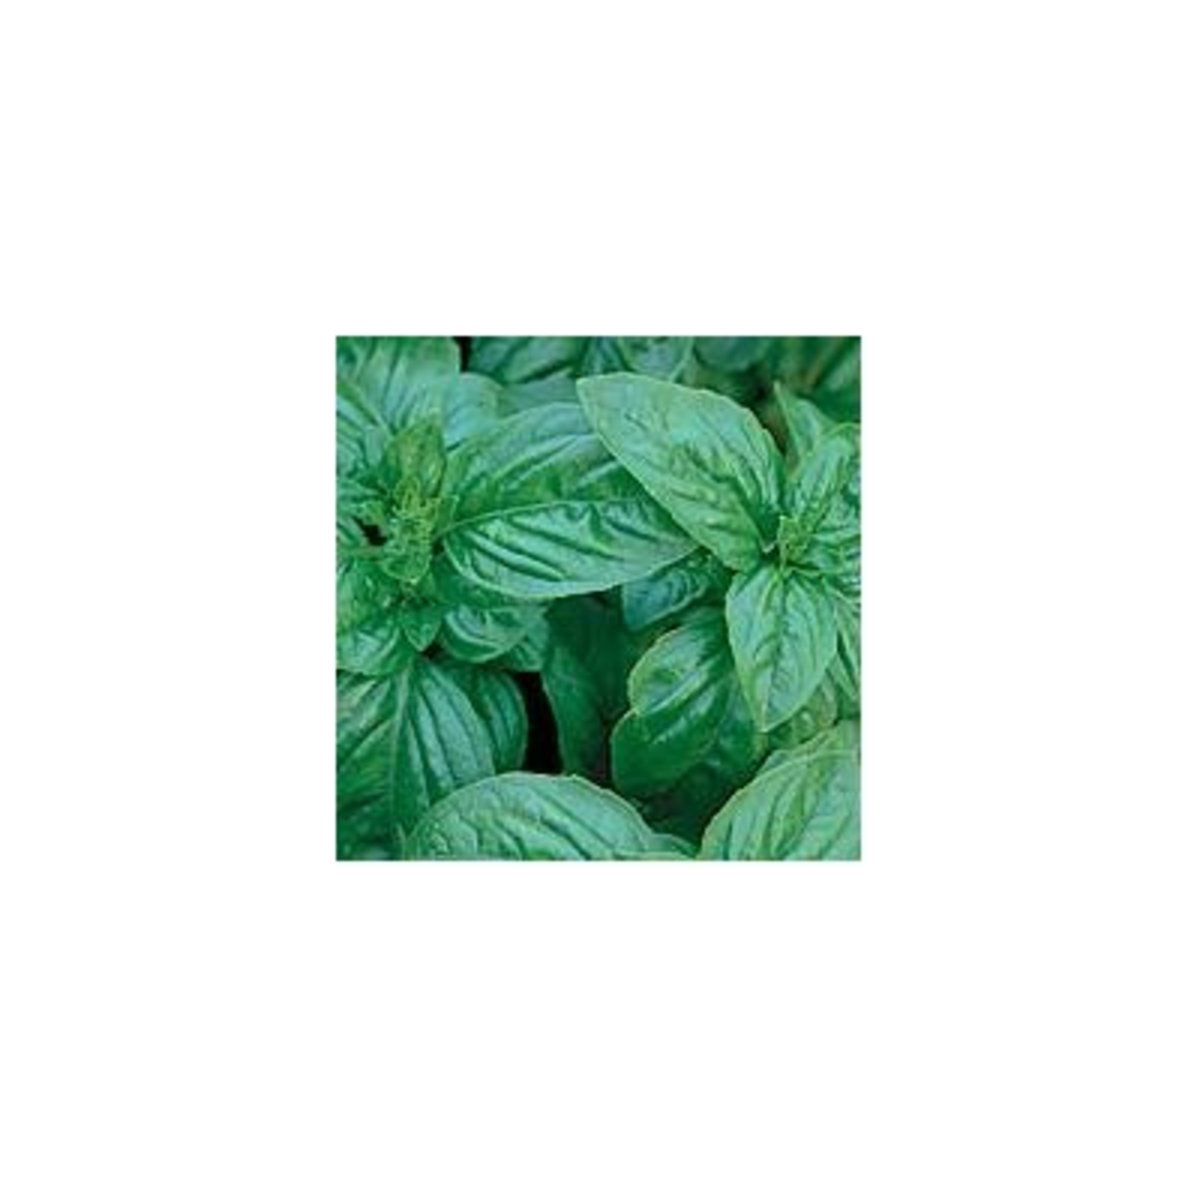 basil-oil-the-health-and-aromatherapy-properties-of-basil-essential-oil